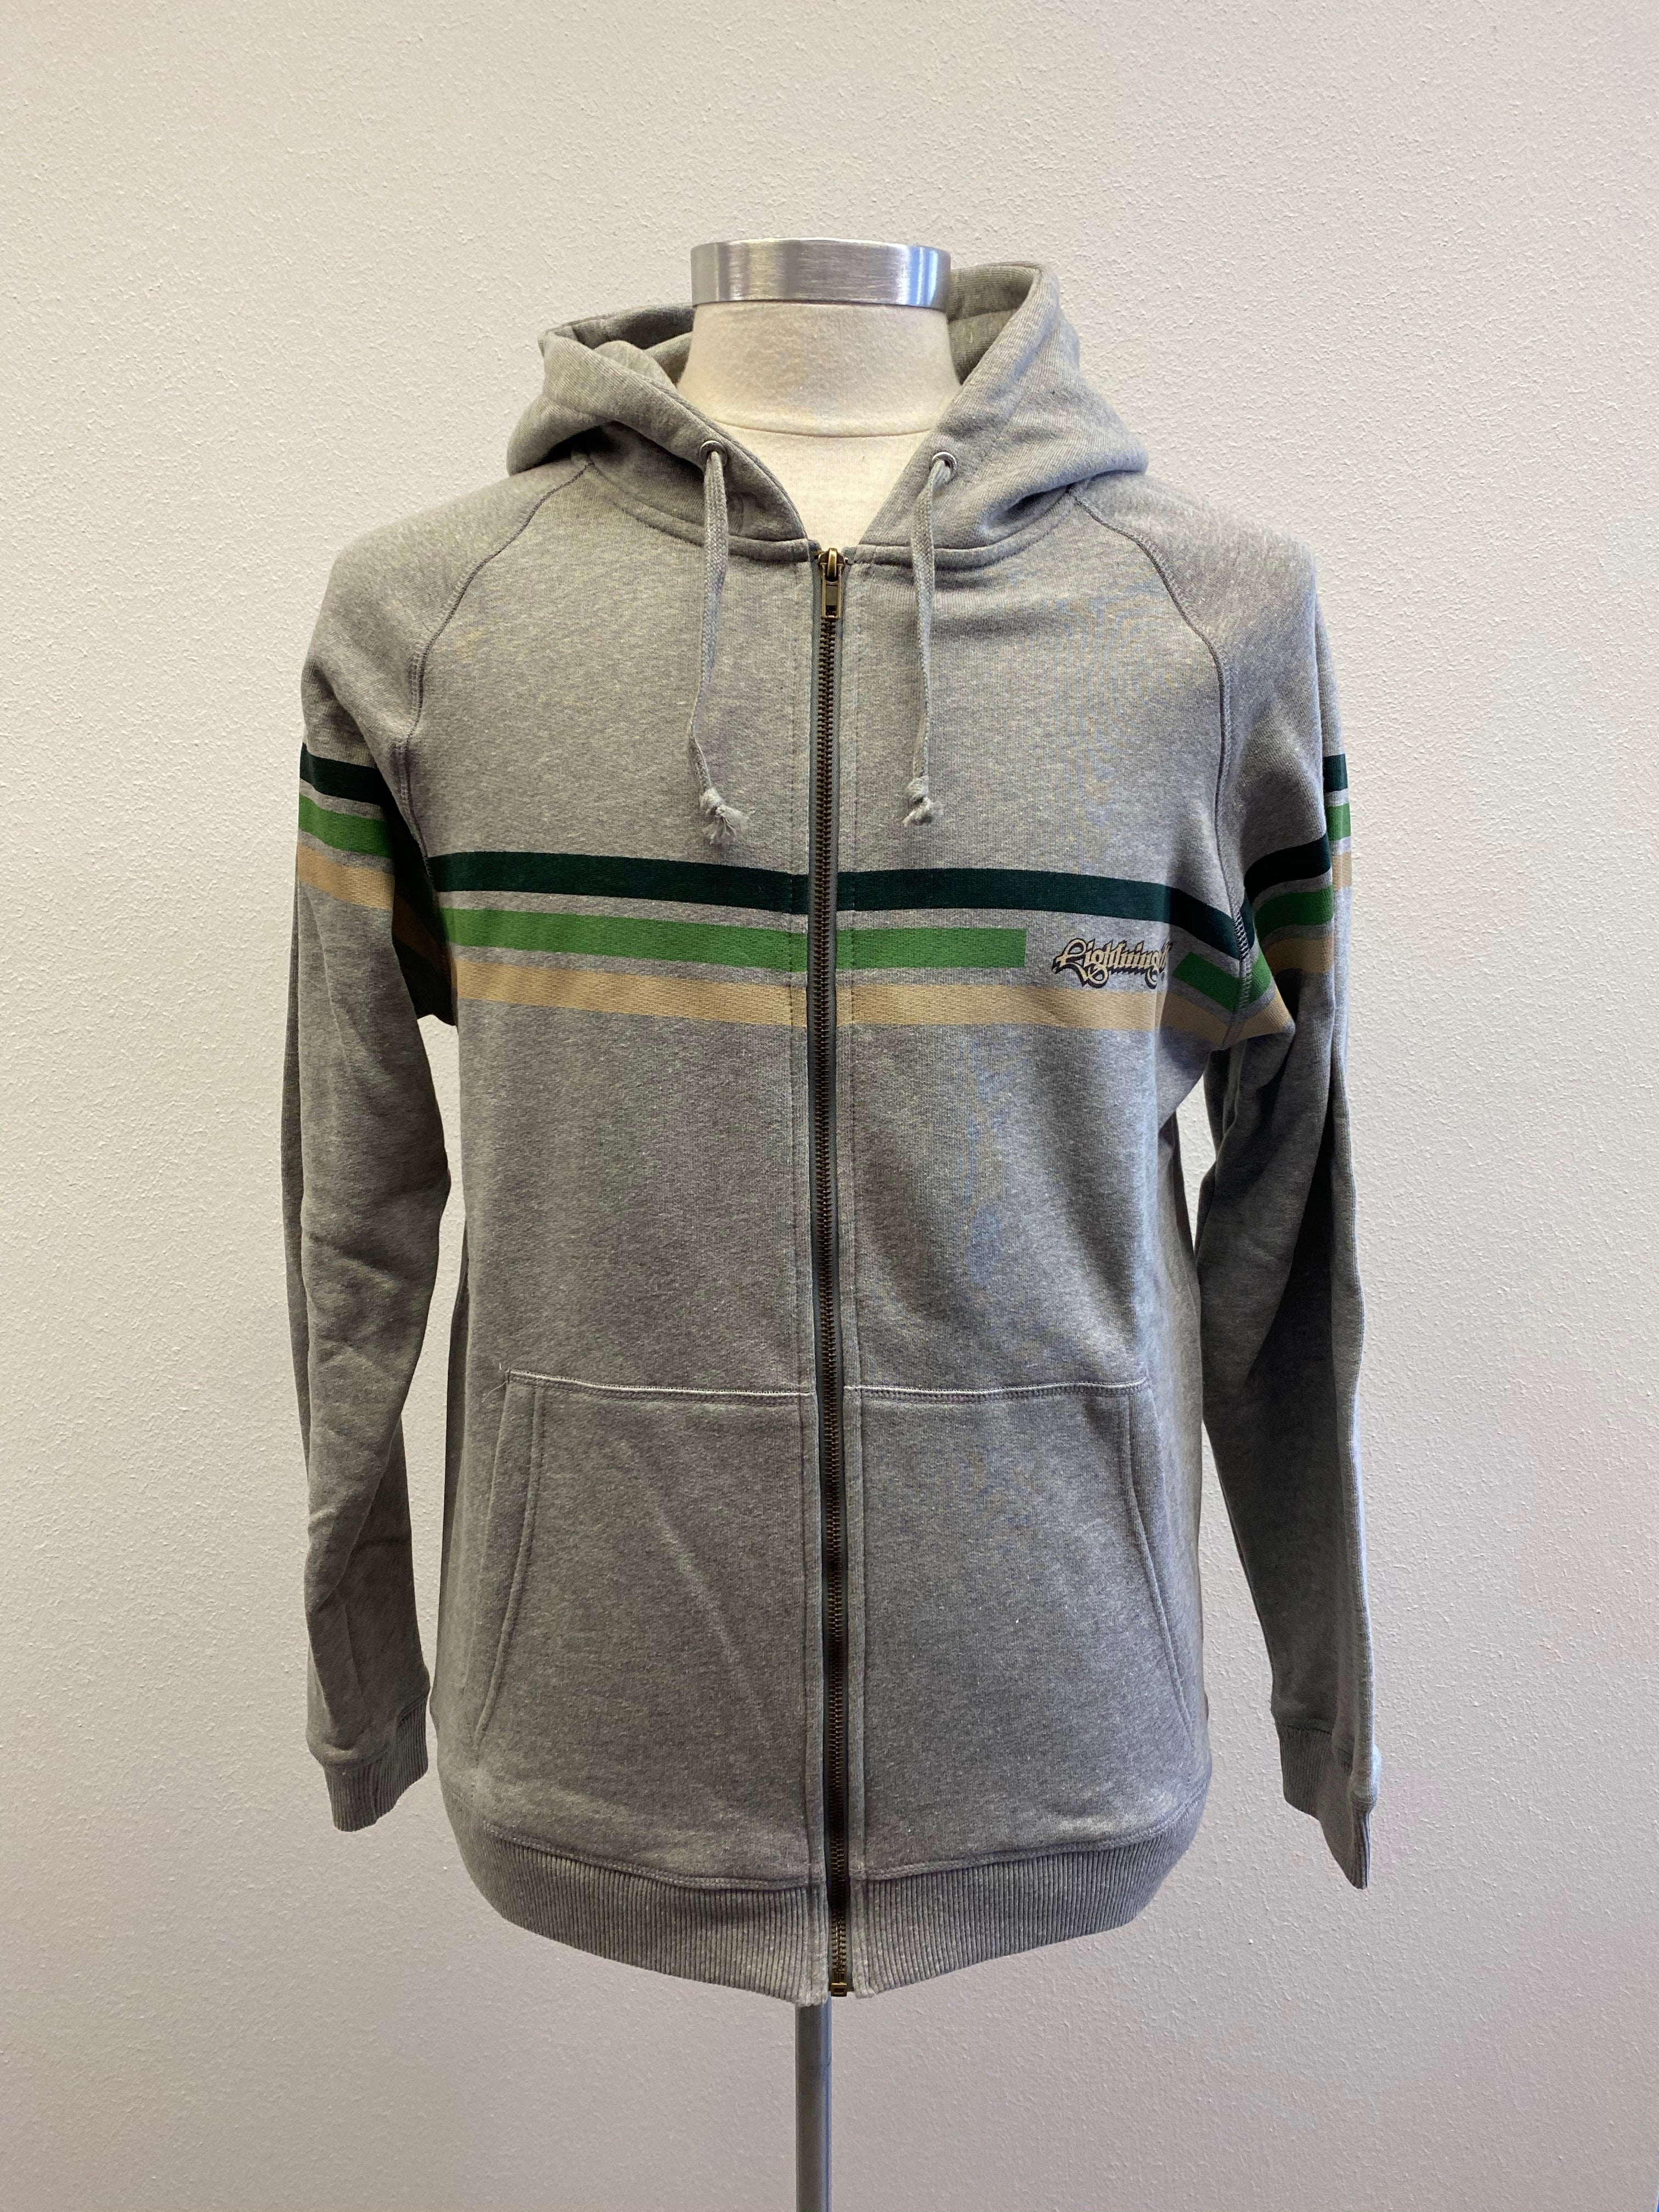 Herrenhoodie von Lightning Bolt